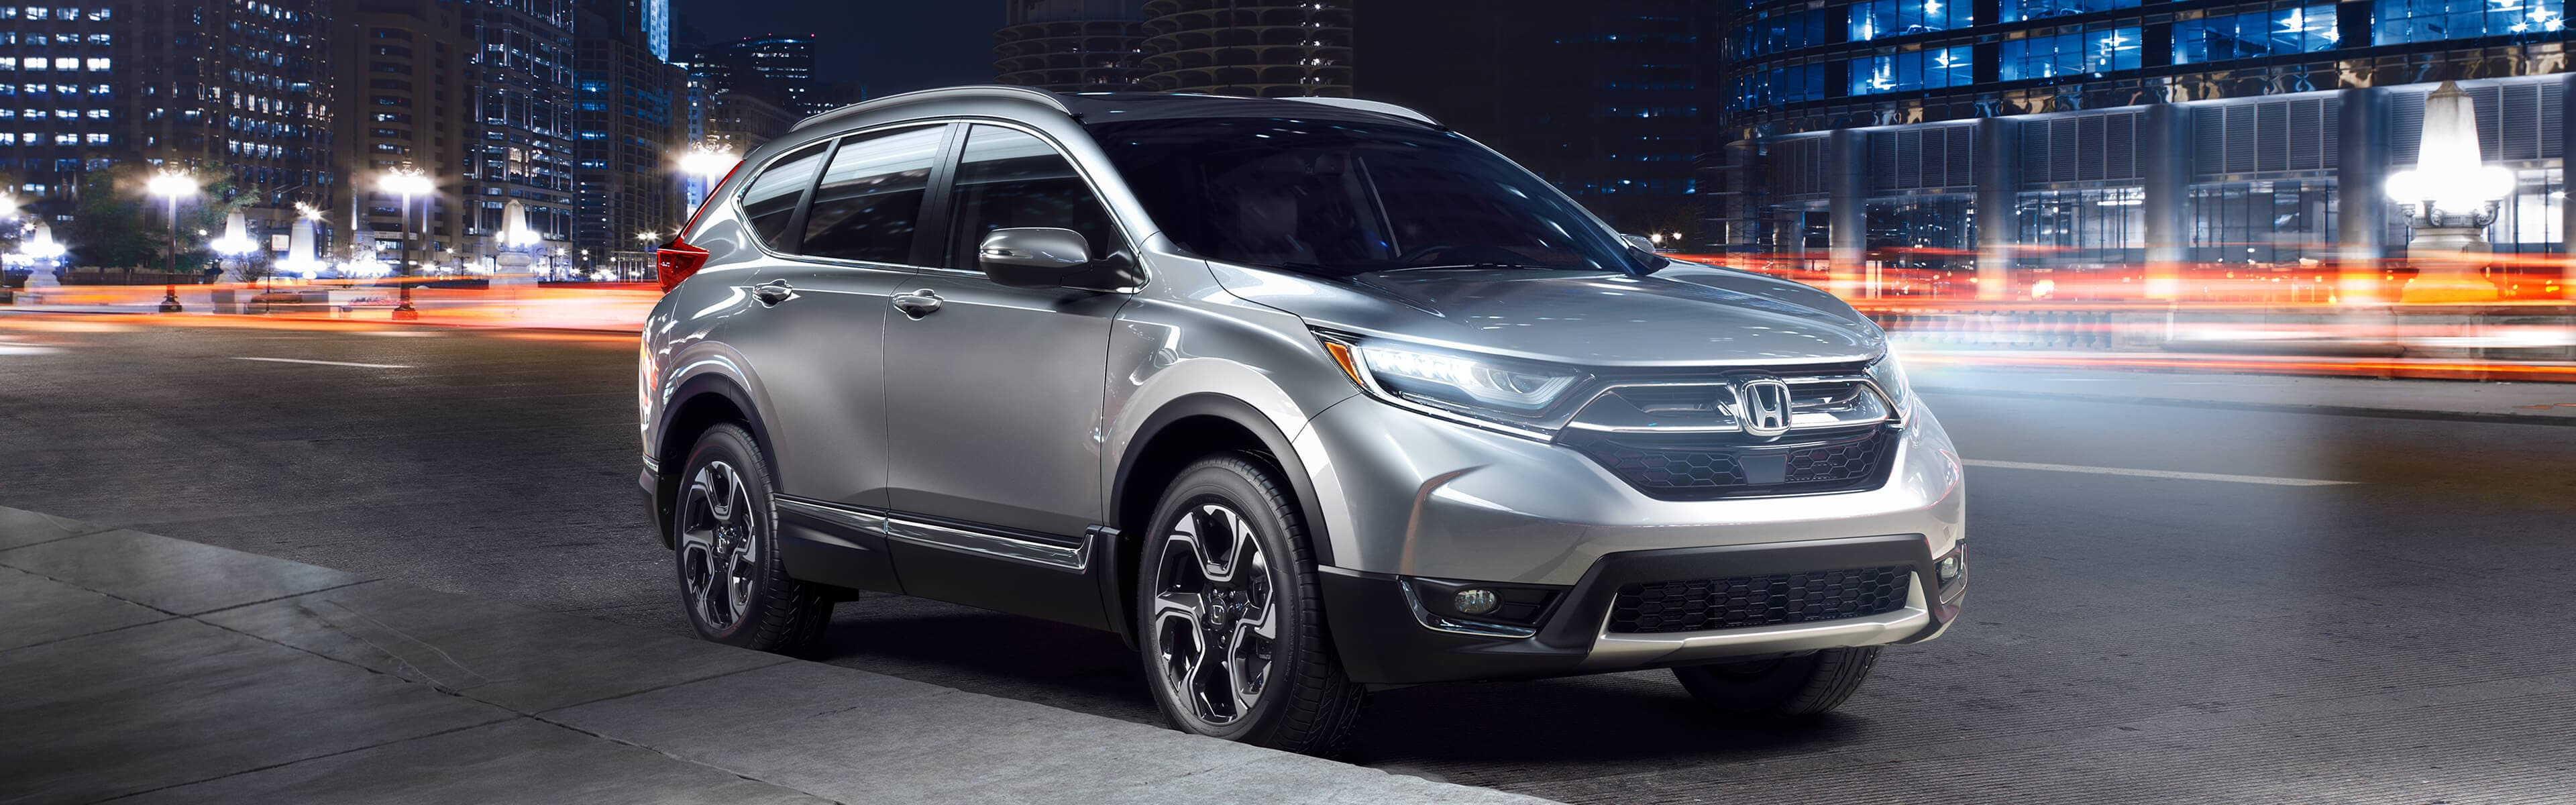 2018 Honda CR-V SUVs For New Glasgow, Nova Scotia Drivers To Explore